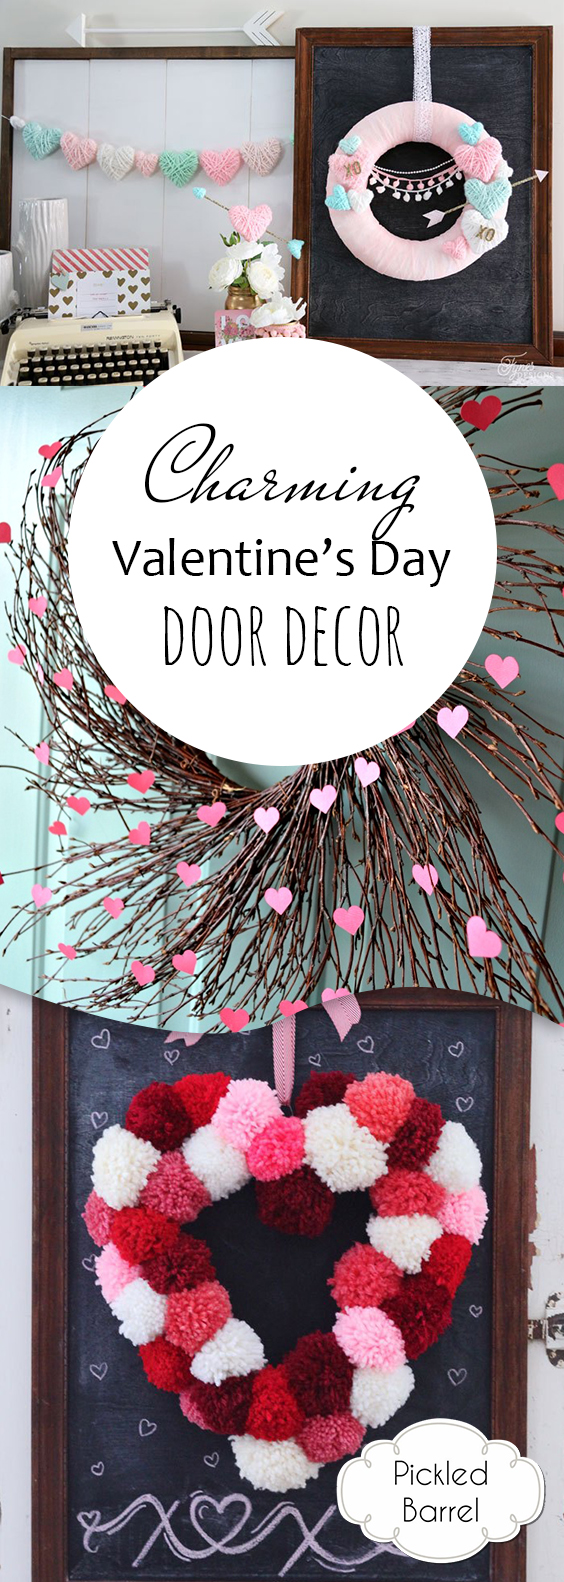 Charming Valentines Day Door Decor| Valentines Day Door Decor, Porch Decor, DIY Porch Decor, Holiday Porch Decor, Valentines Day DIYs, DIY Home Decor, Popular Pin #PorchDecor #ValentinesDay